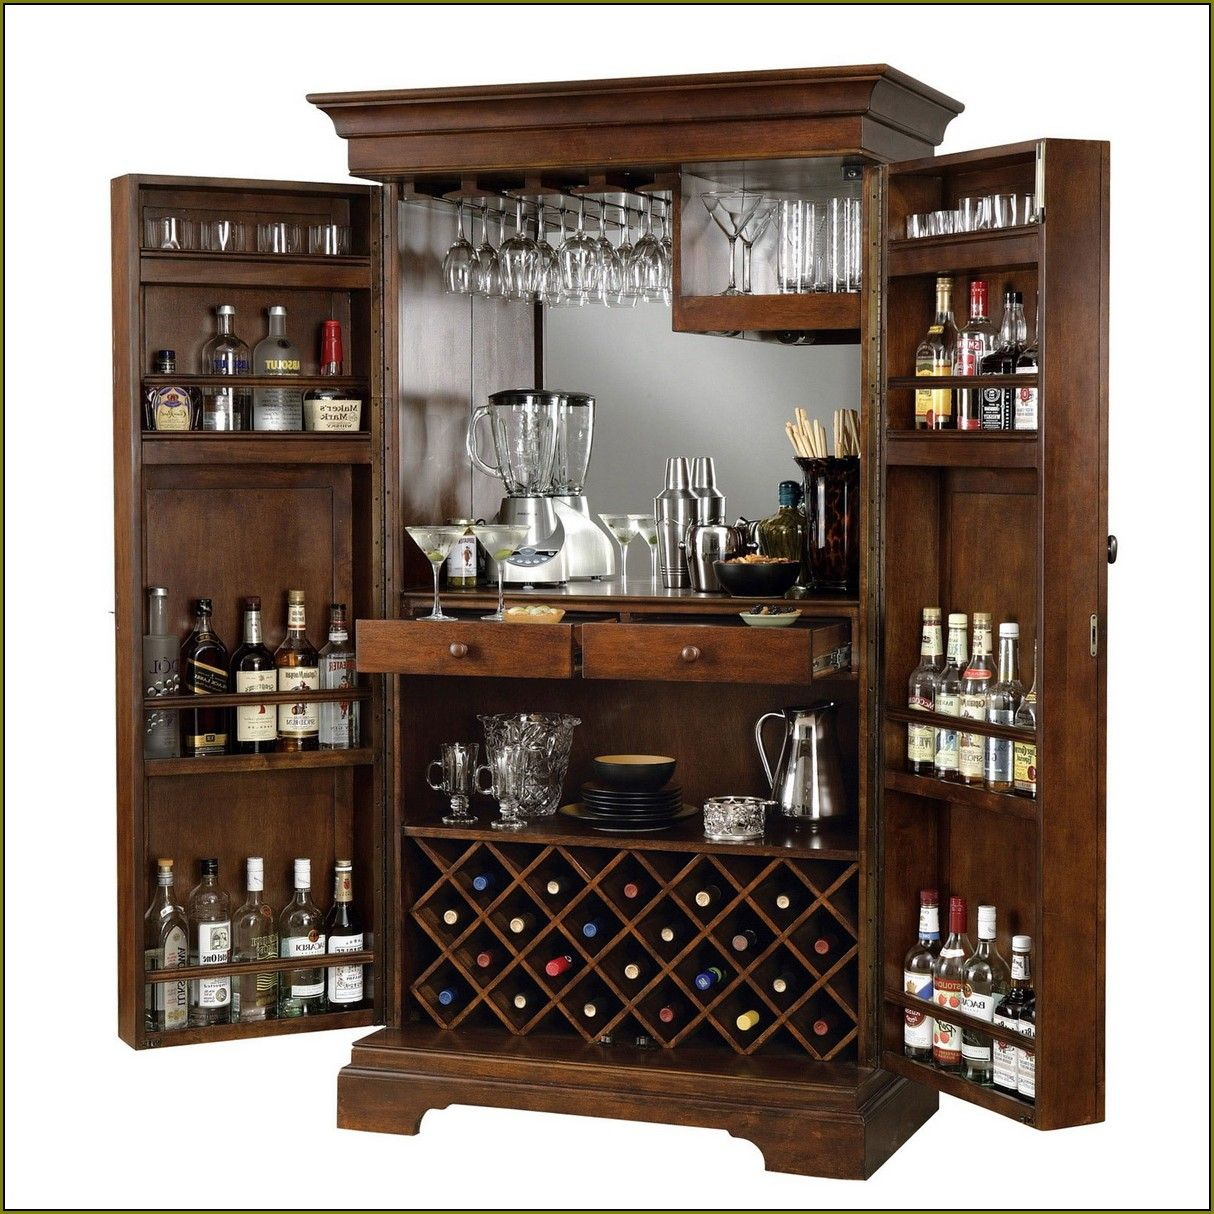 Elegant liquor cabinet ikea for home furniture ideas for Corner bar cabinet ikea